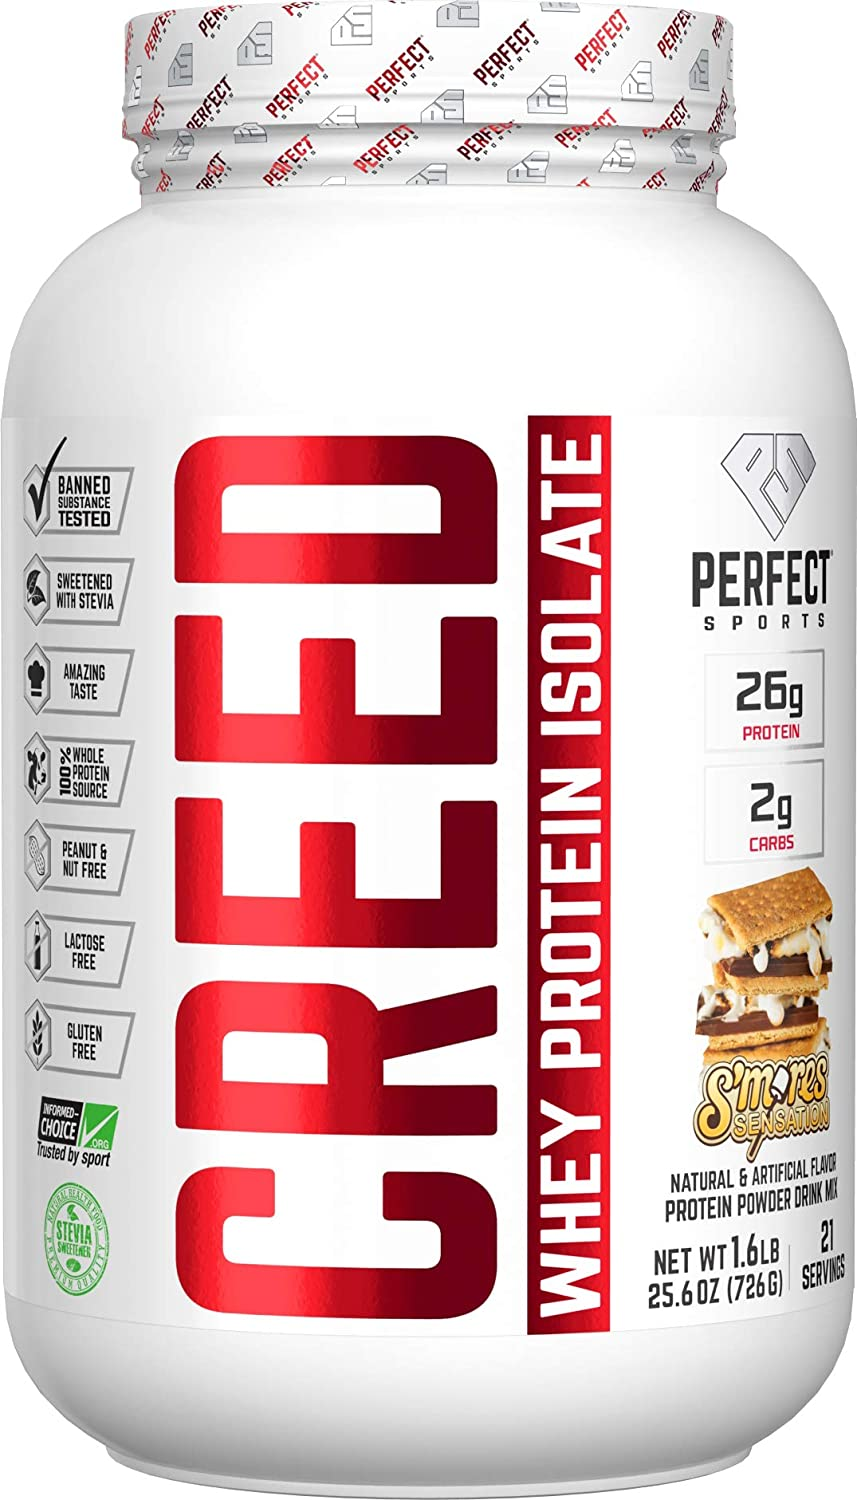 PERFECT Now free shipping Sports Creed 100% Whey Isolate 1 with Credence Stevia Sweetened